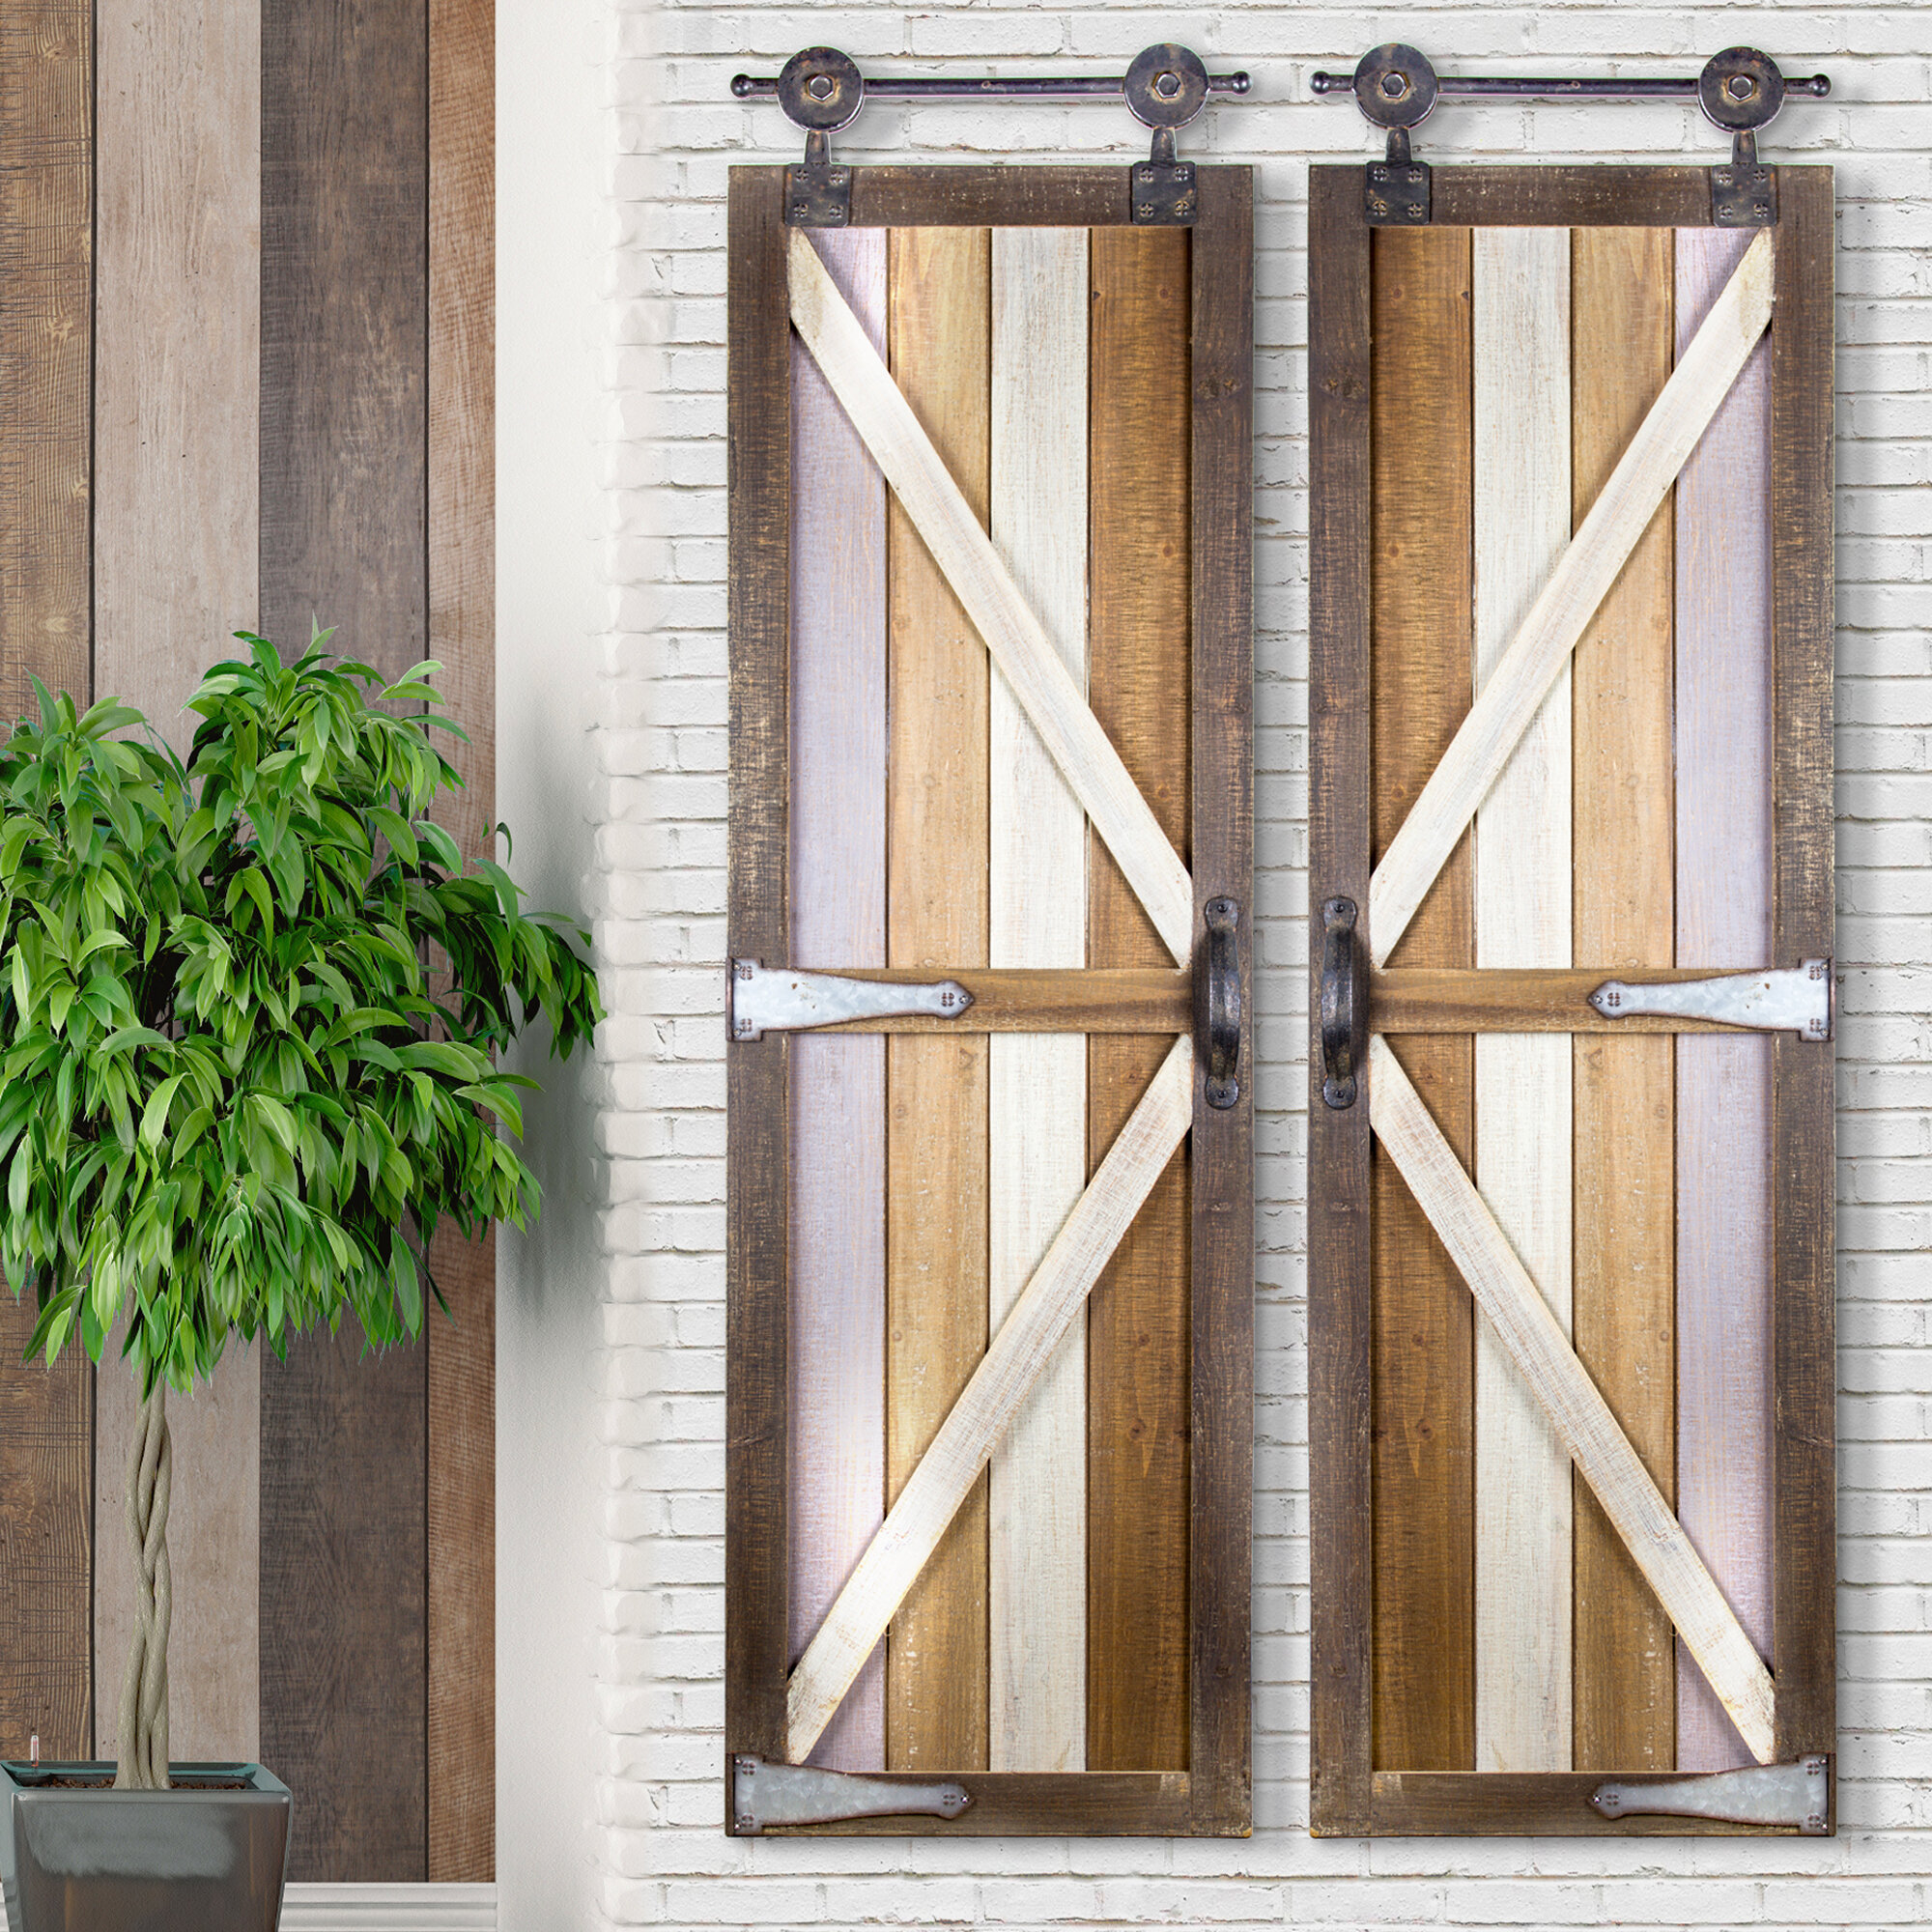 Gracie Oaks Barnyard Doors Wood Metal Hanging Wall Décor \u0026 Reviews | Wayfair & Gracie Oaks Barnyard Doors Wood Metal Hanging Wall Décor \u0026 Reviews ...